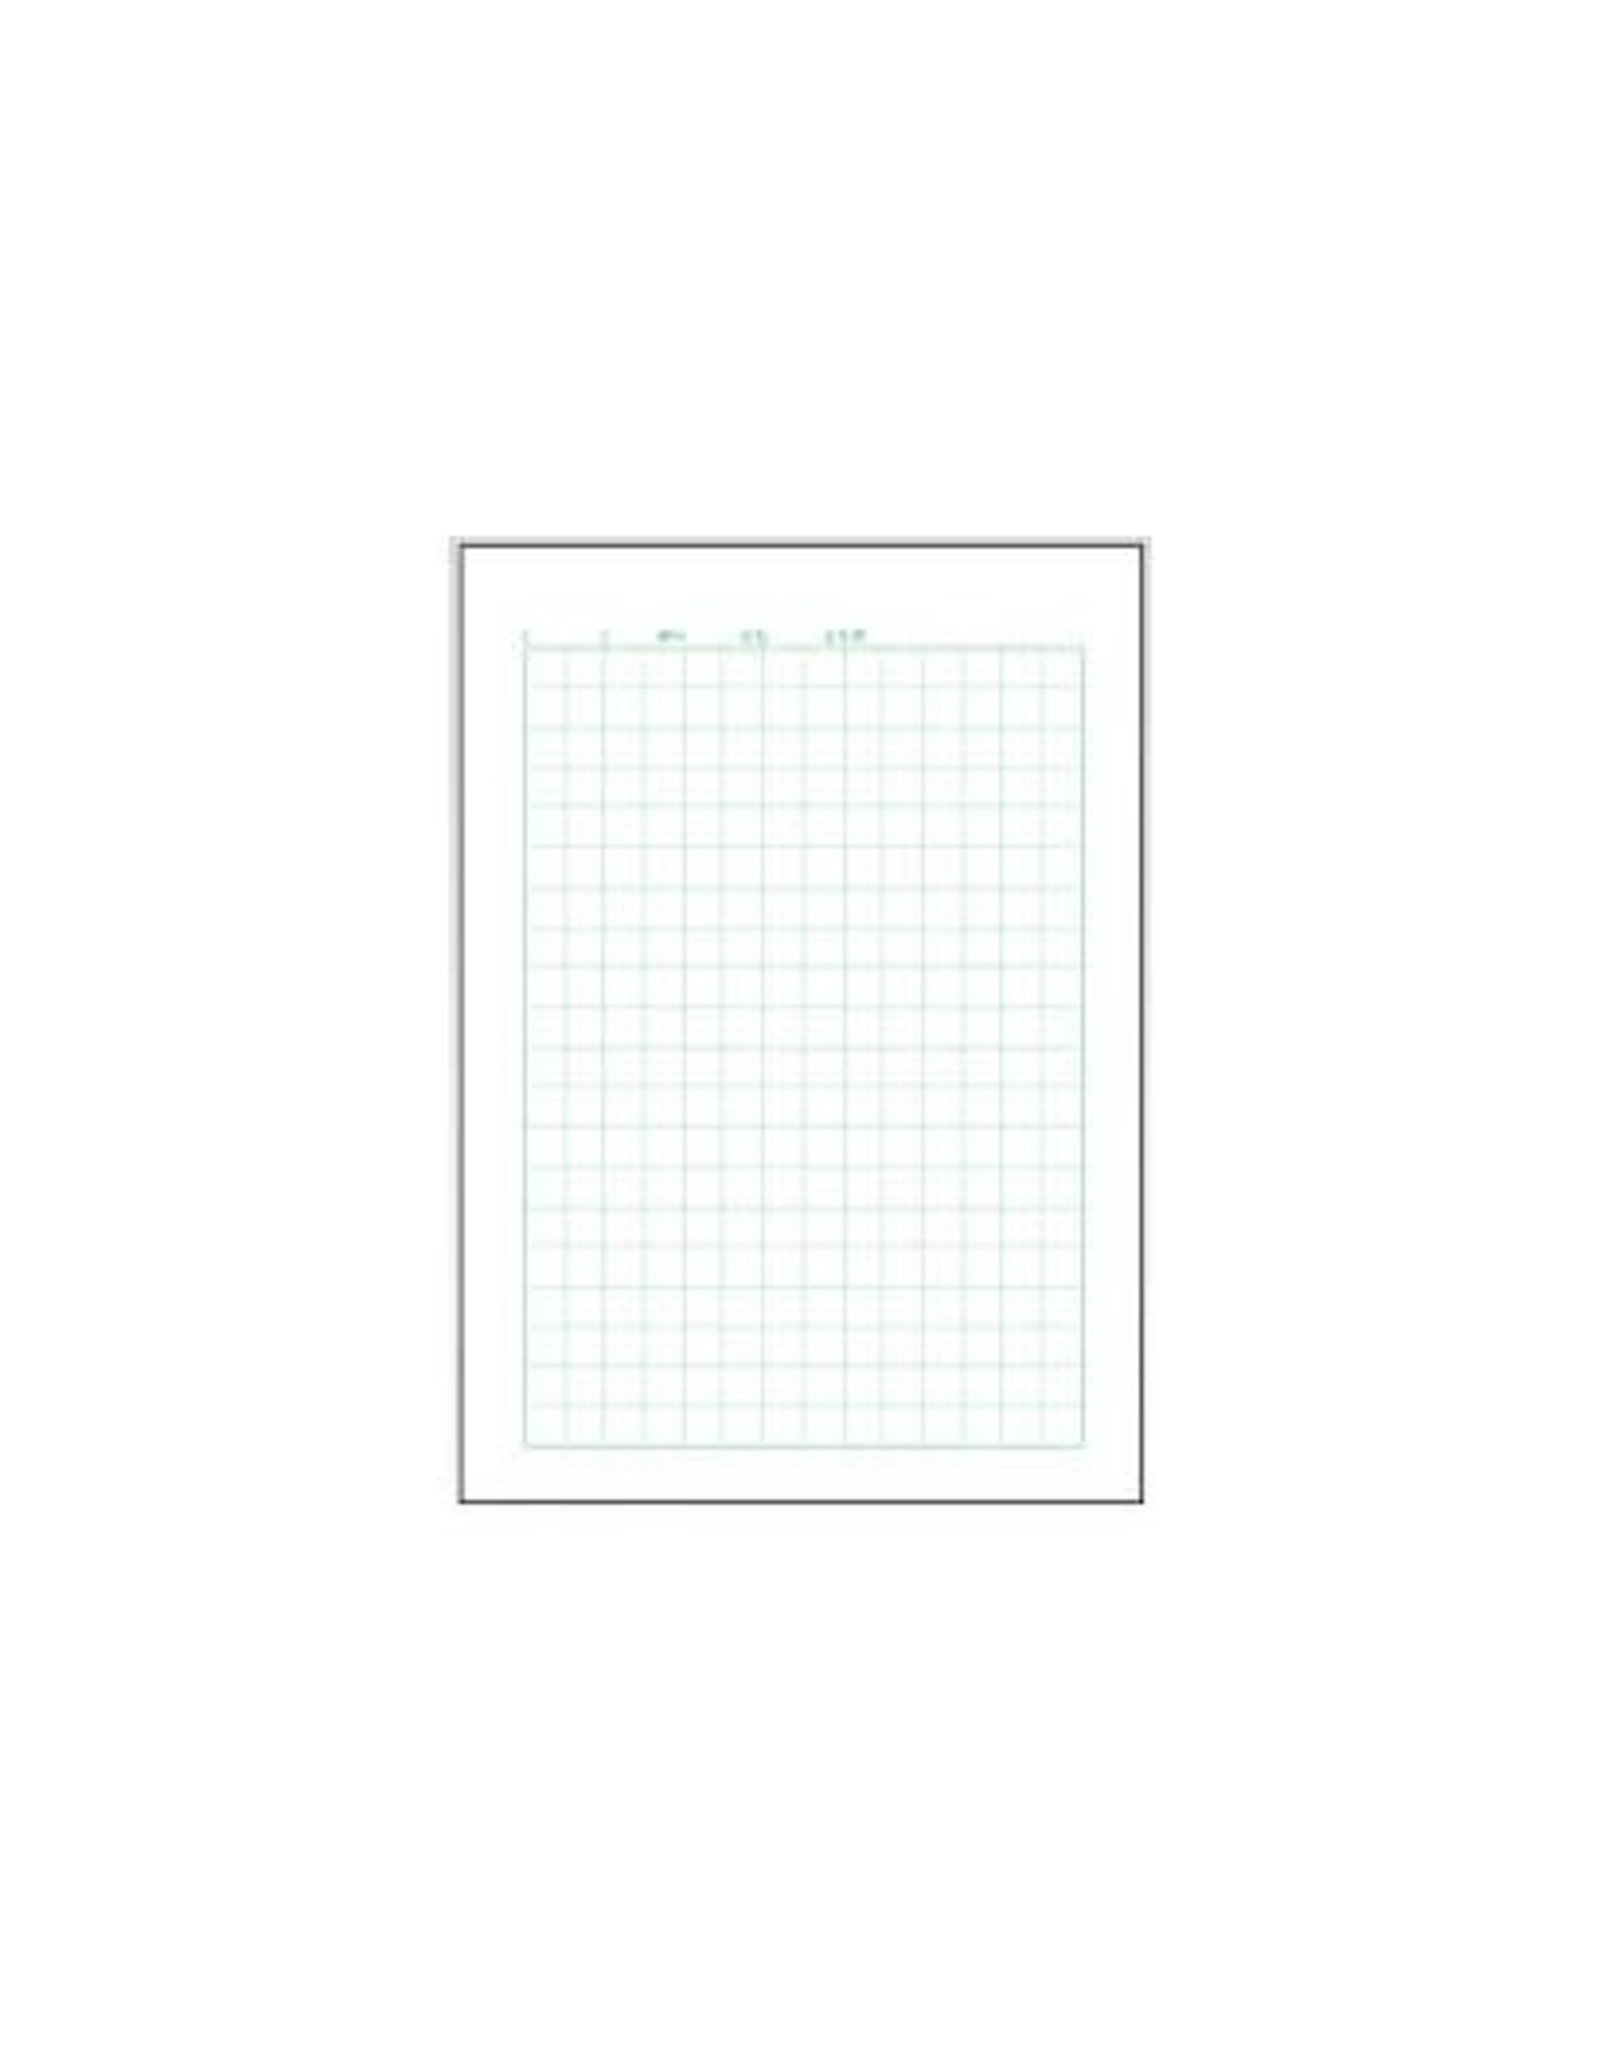 APICA Co., Ltd. APICA TOKAI GRAPHIC STUDY NOTEBOOK JAPANESE 10 SQUARES WITH SUPPORT LINES